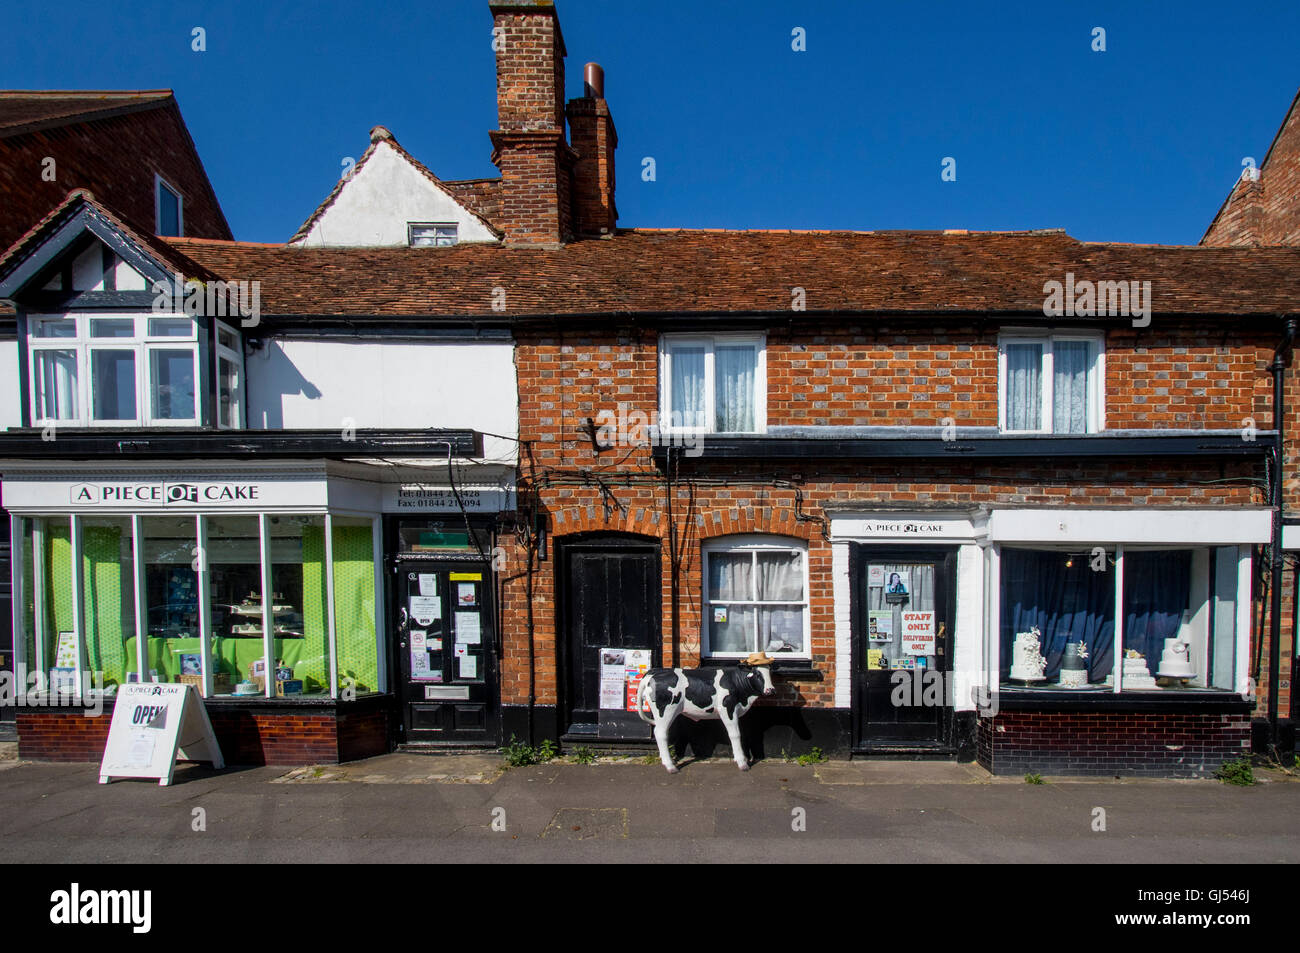 Shop with statue of cow outside in town of Thame Oxfordshire England - Stock Image